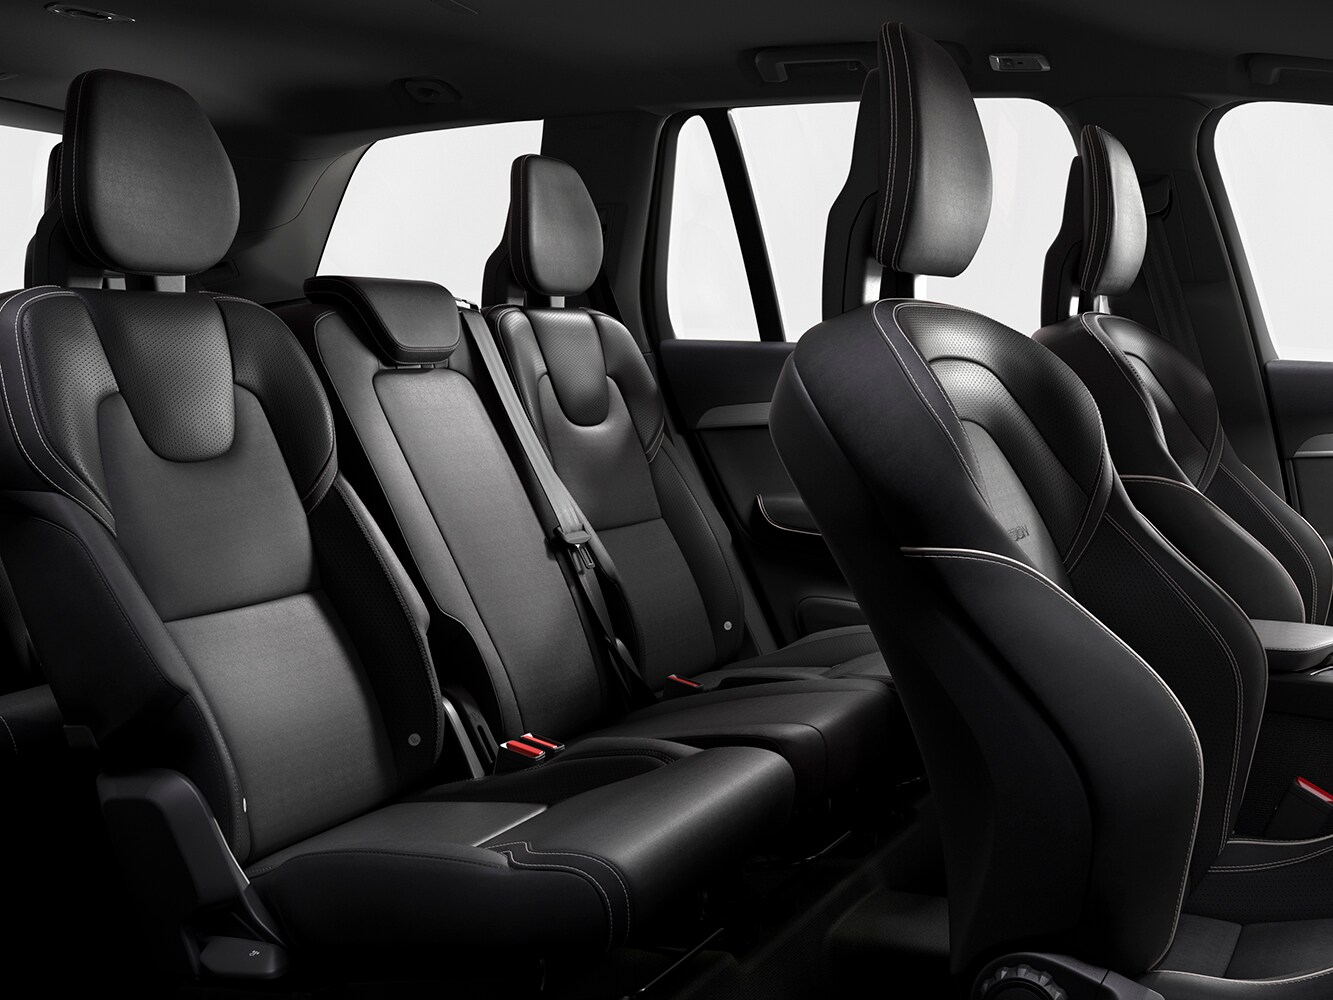 Interior view of contour sets upholstered in Perforated Nappa Leather/Nubuck textile inside the Volvo XC90 R-Design